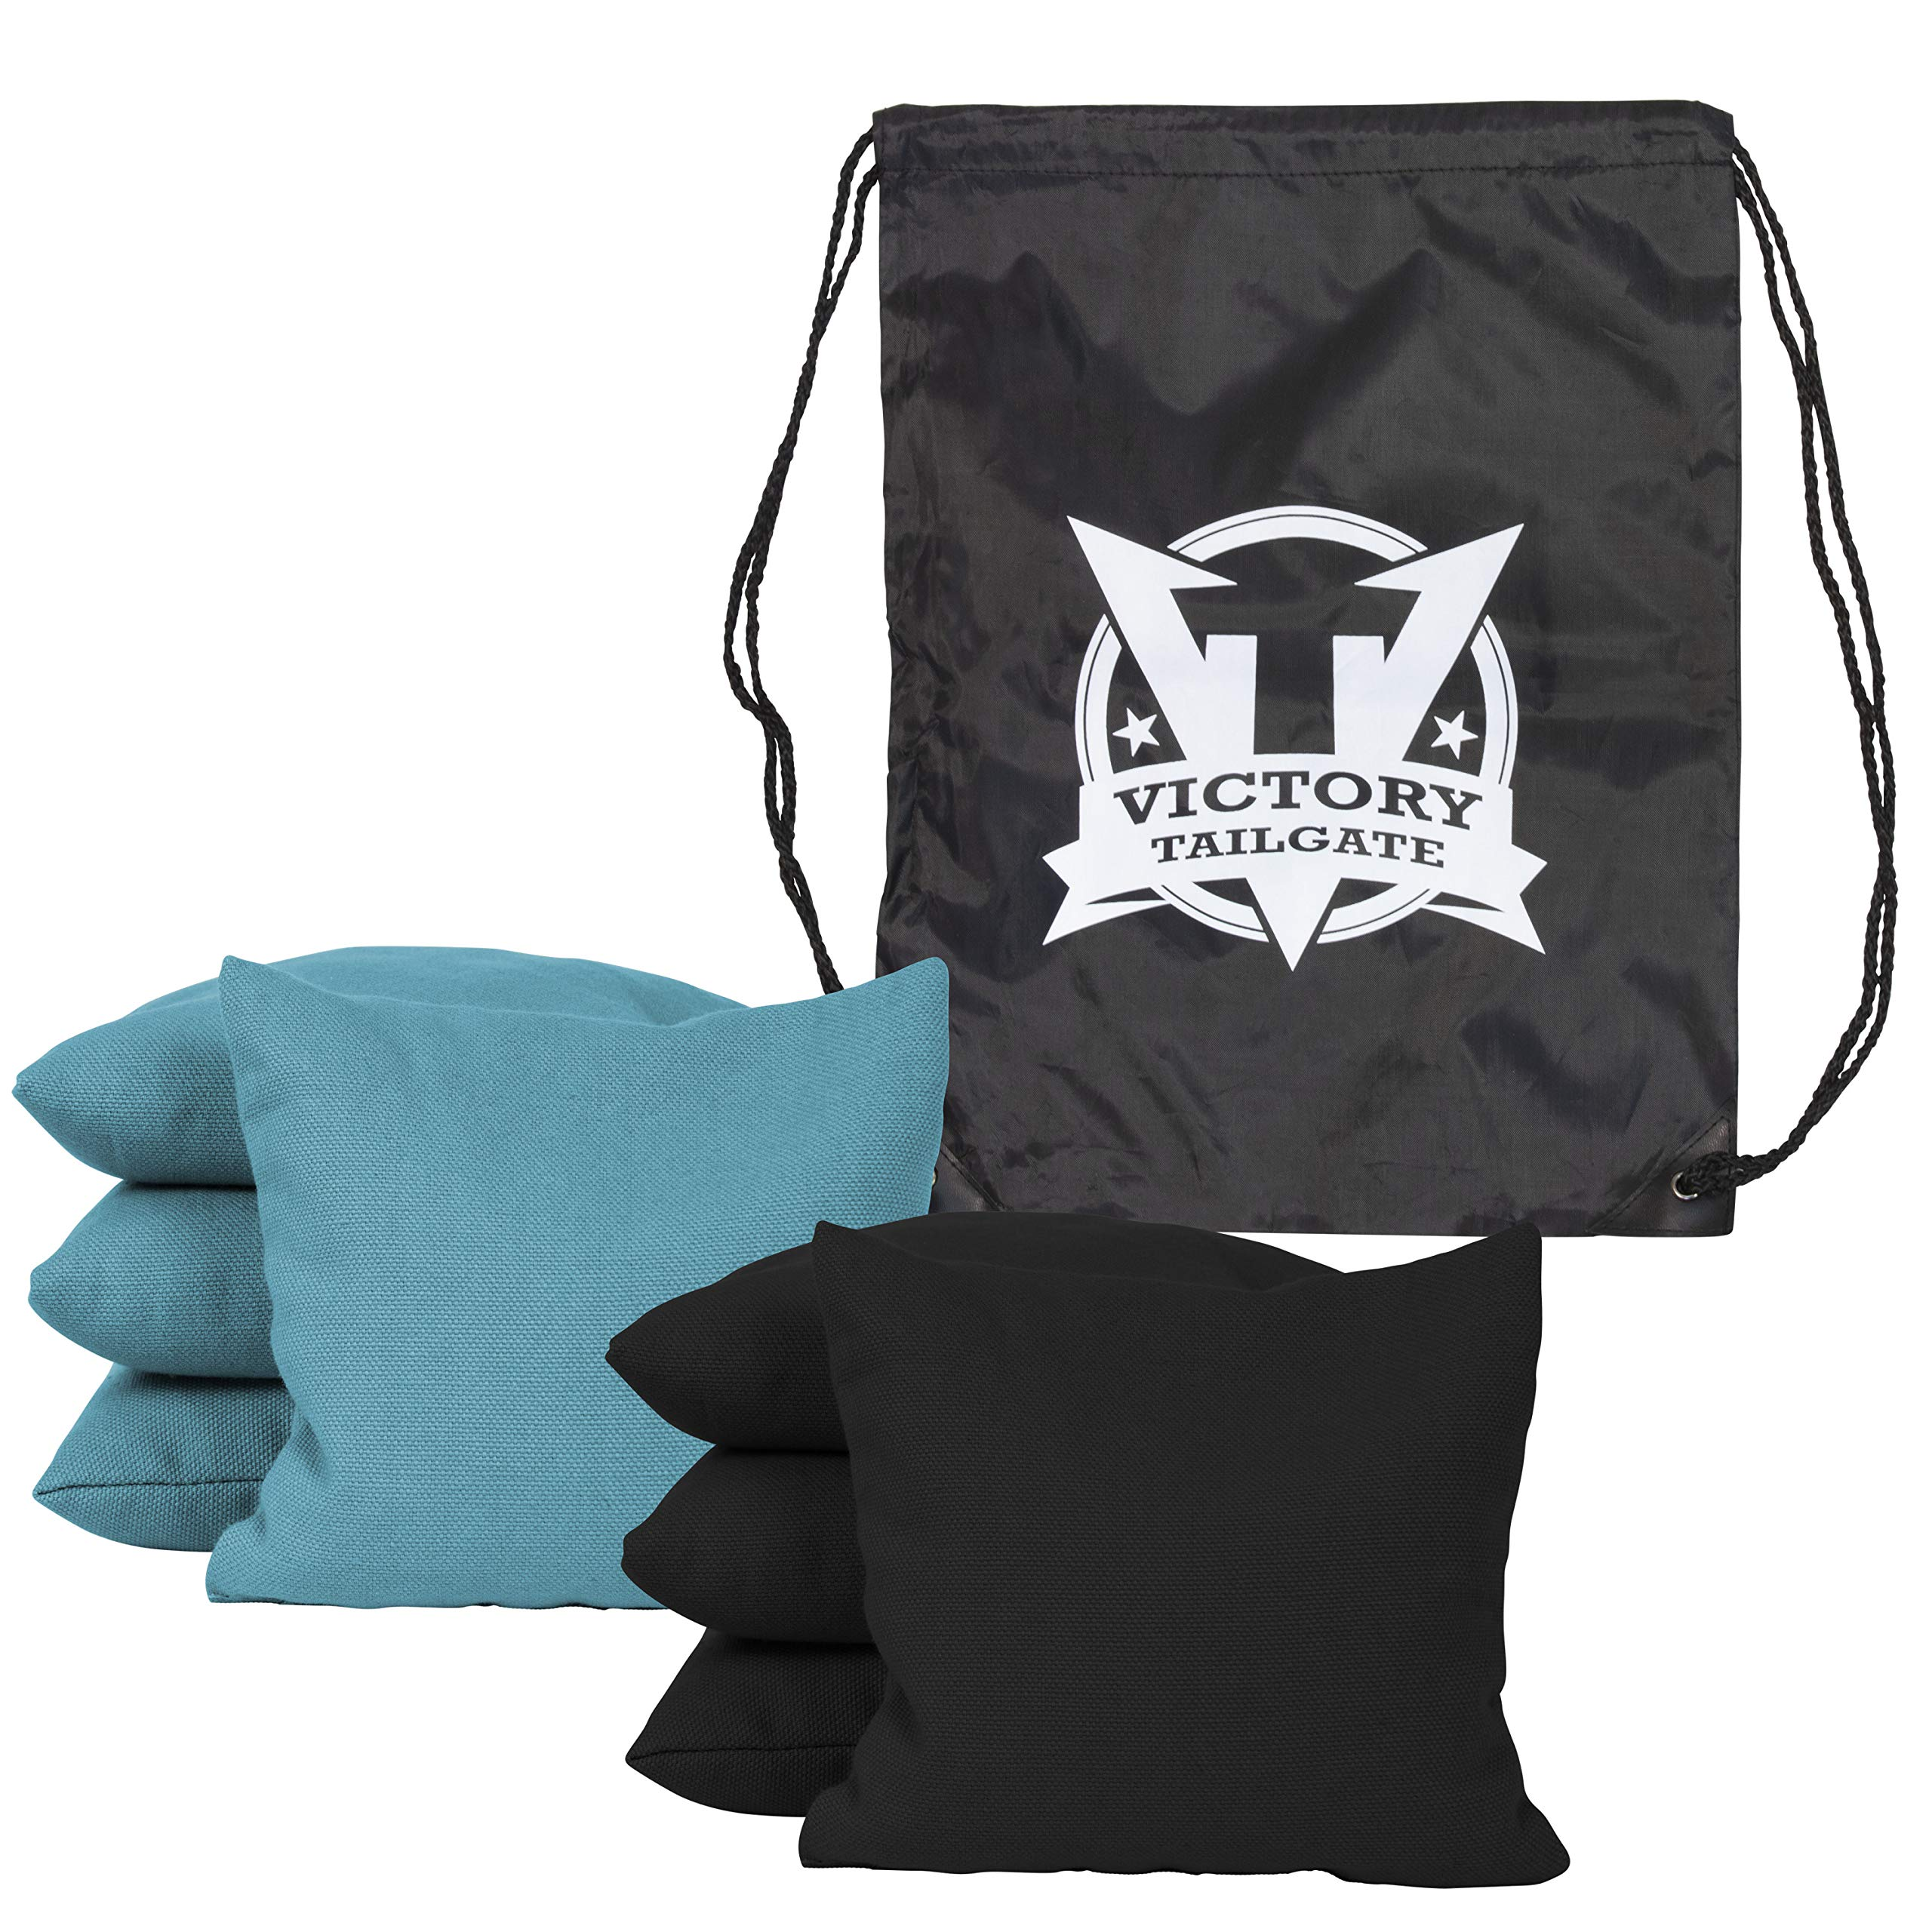 Victory Tailgate 8 Colored Corn Filled Regulation Cornhole Bags with Drawstring Pack (4 Black, 4 Turquoise)